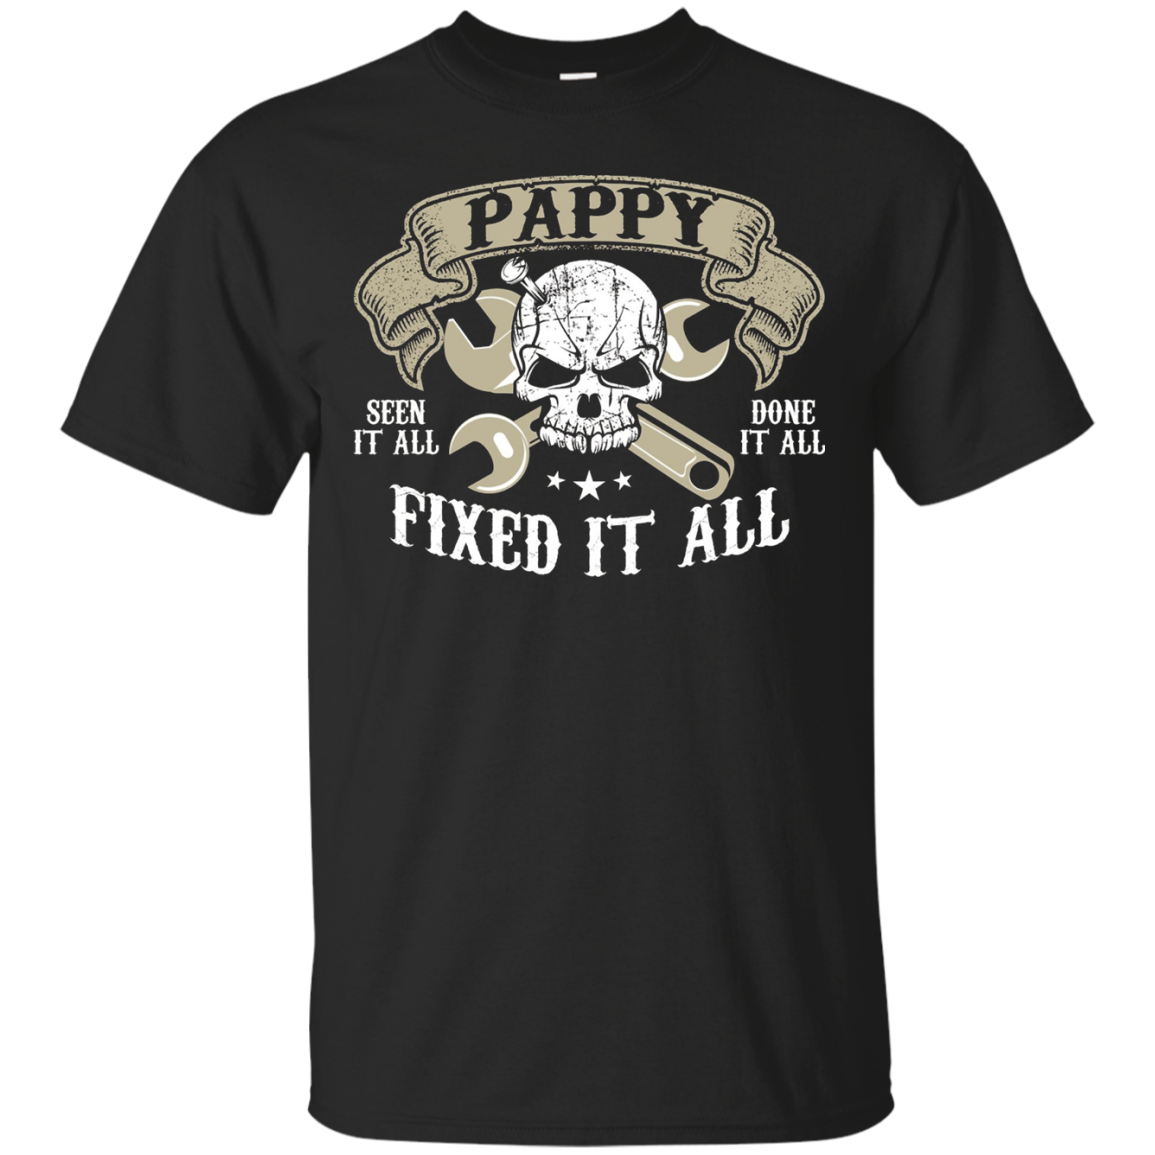 Pappy Seen It All Done It All Fixed It All TShirt